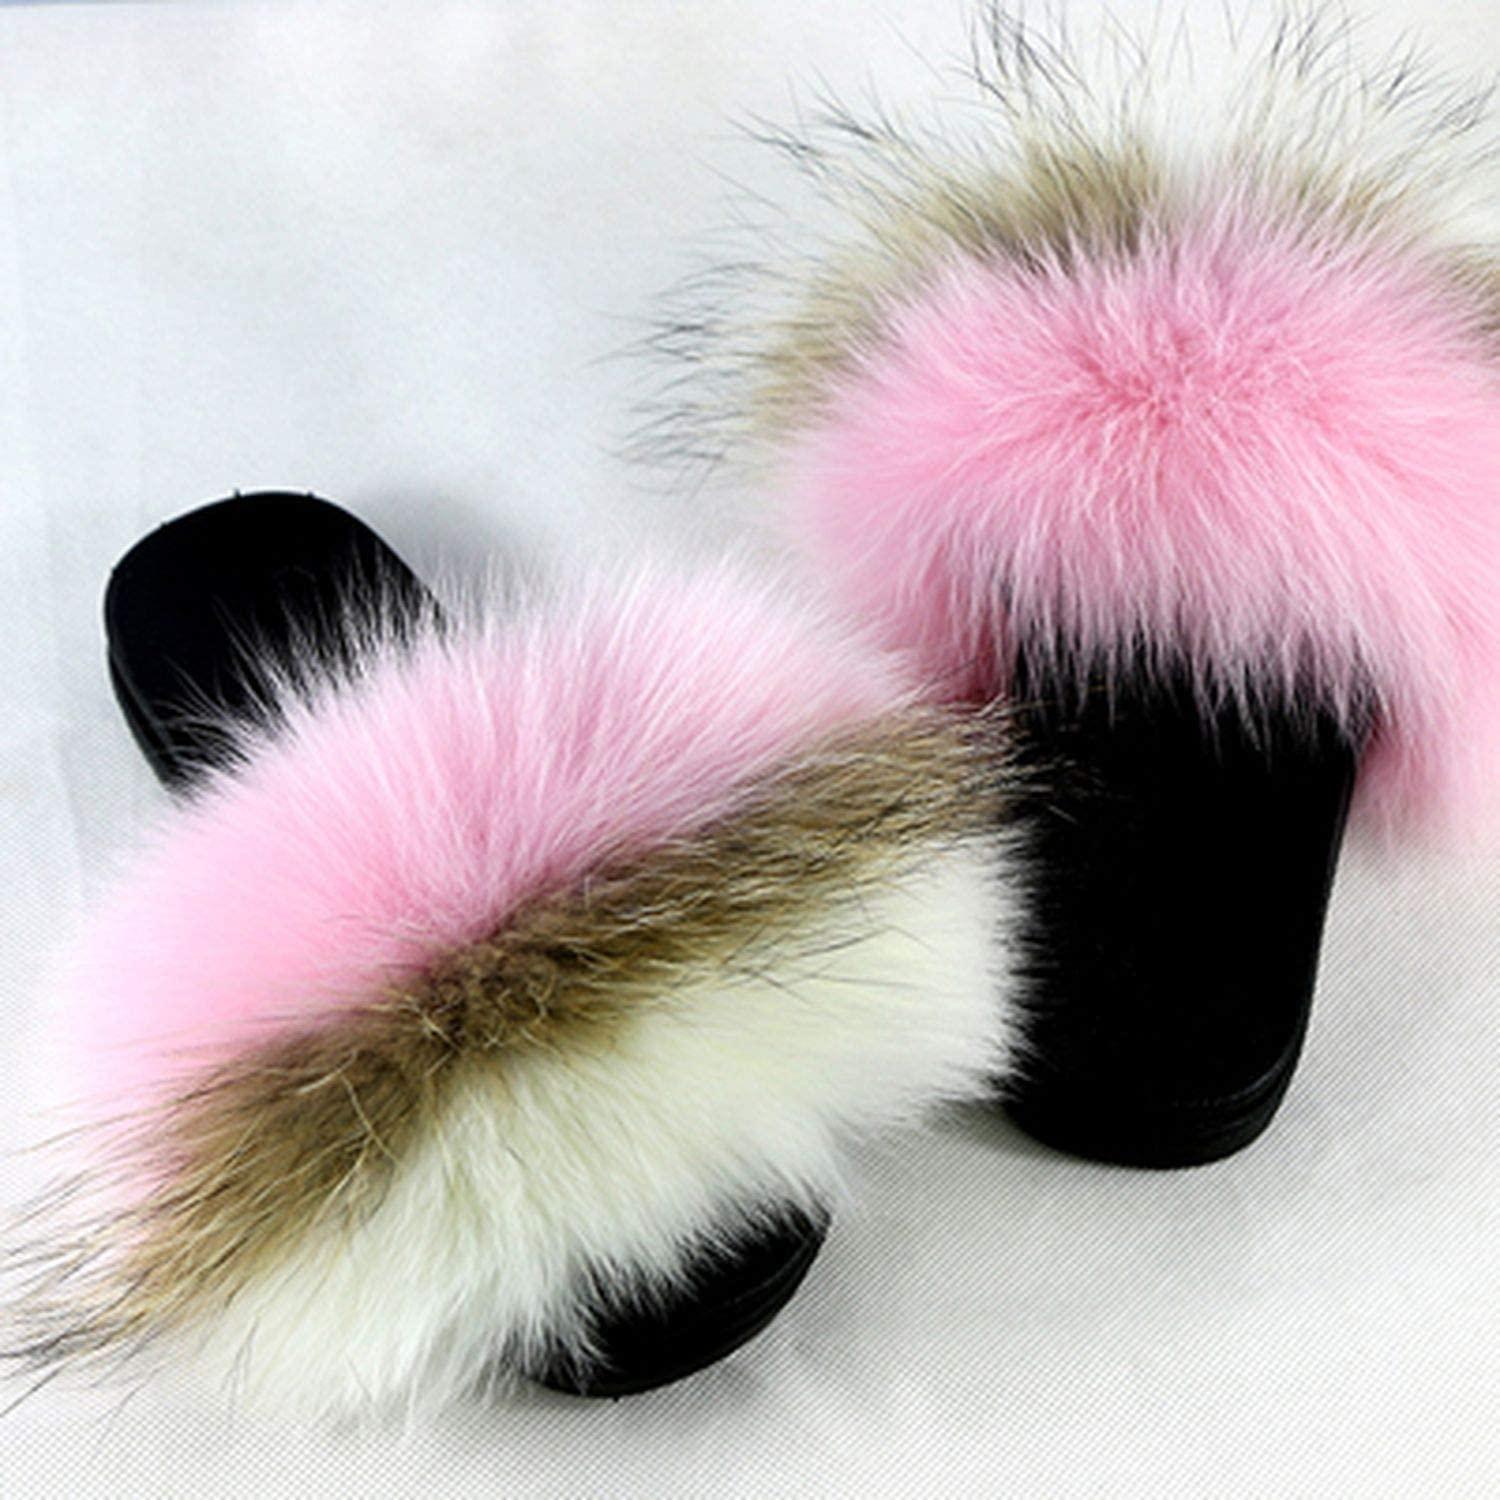 Blingbling-honored High end Fox Fur Slides 2019 Open Toe Sandals Fluffy Slippers Soft Fur Slippers Slip On Sliders Flip Flops Furry shoes Women